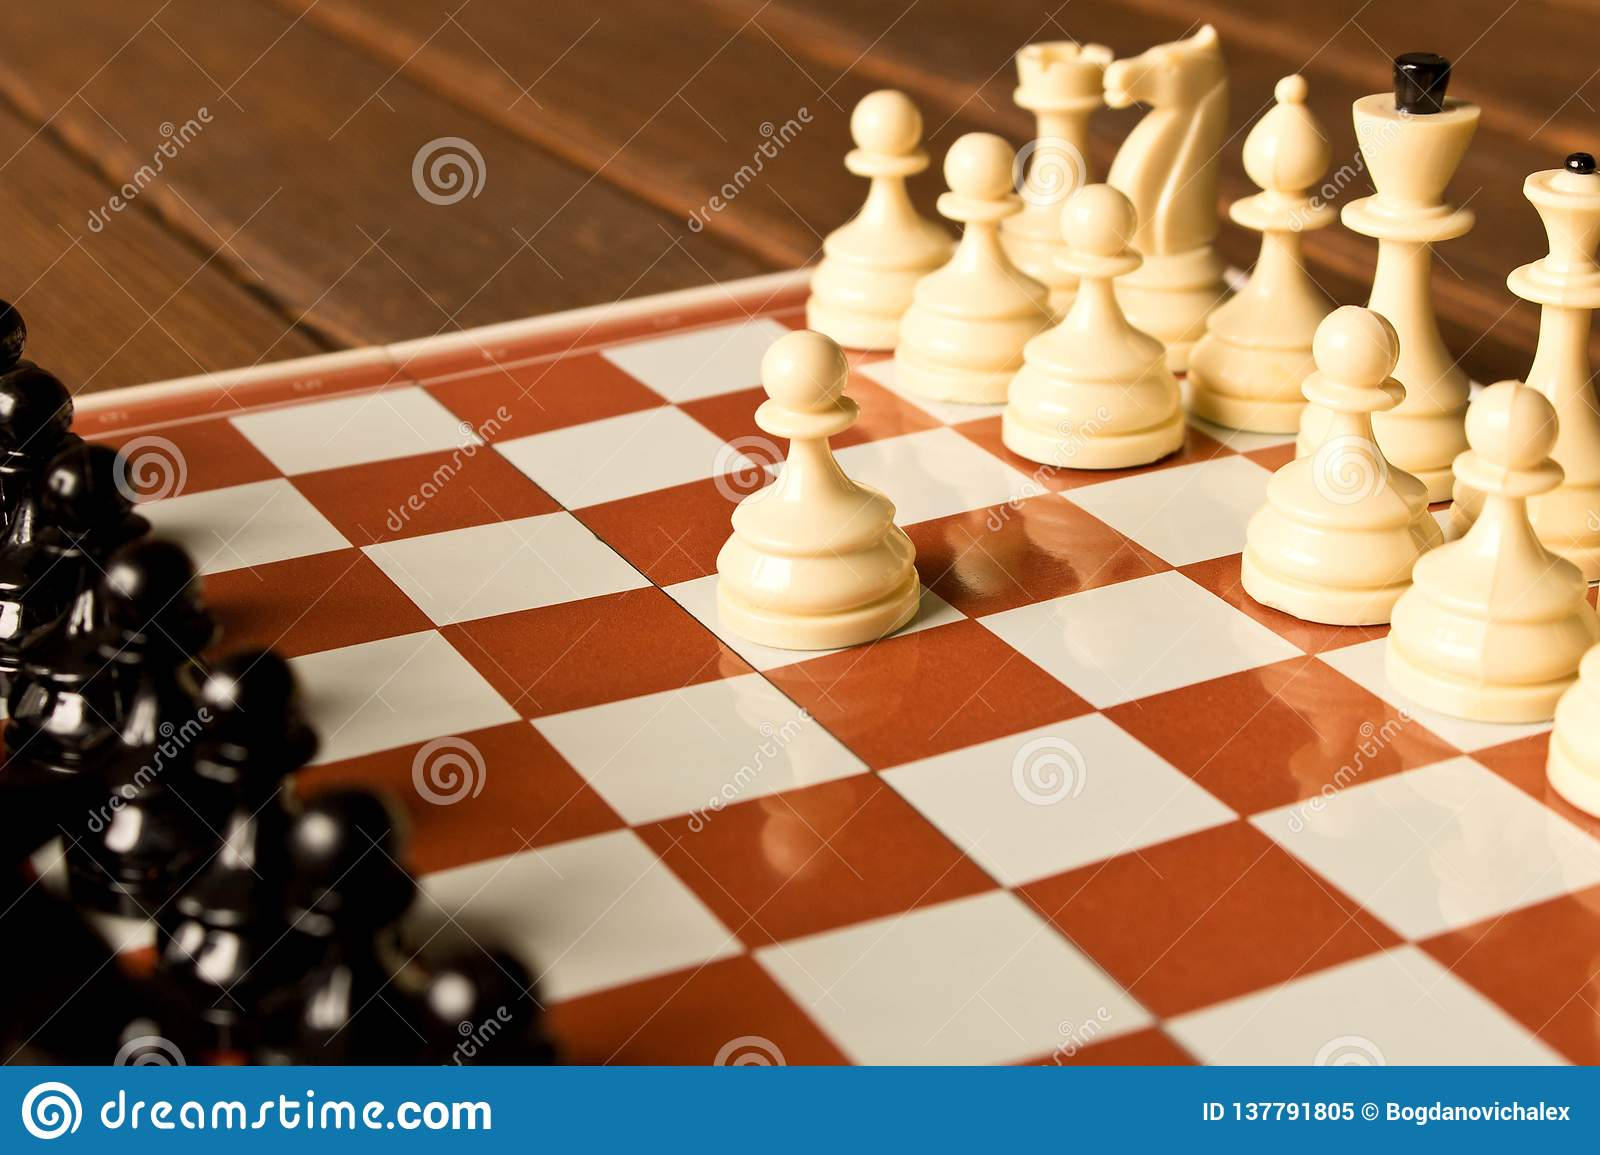 The beginning of the chess game. The concept of the game of chess